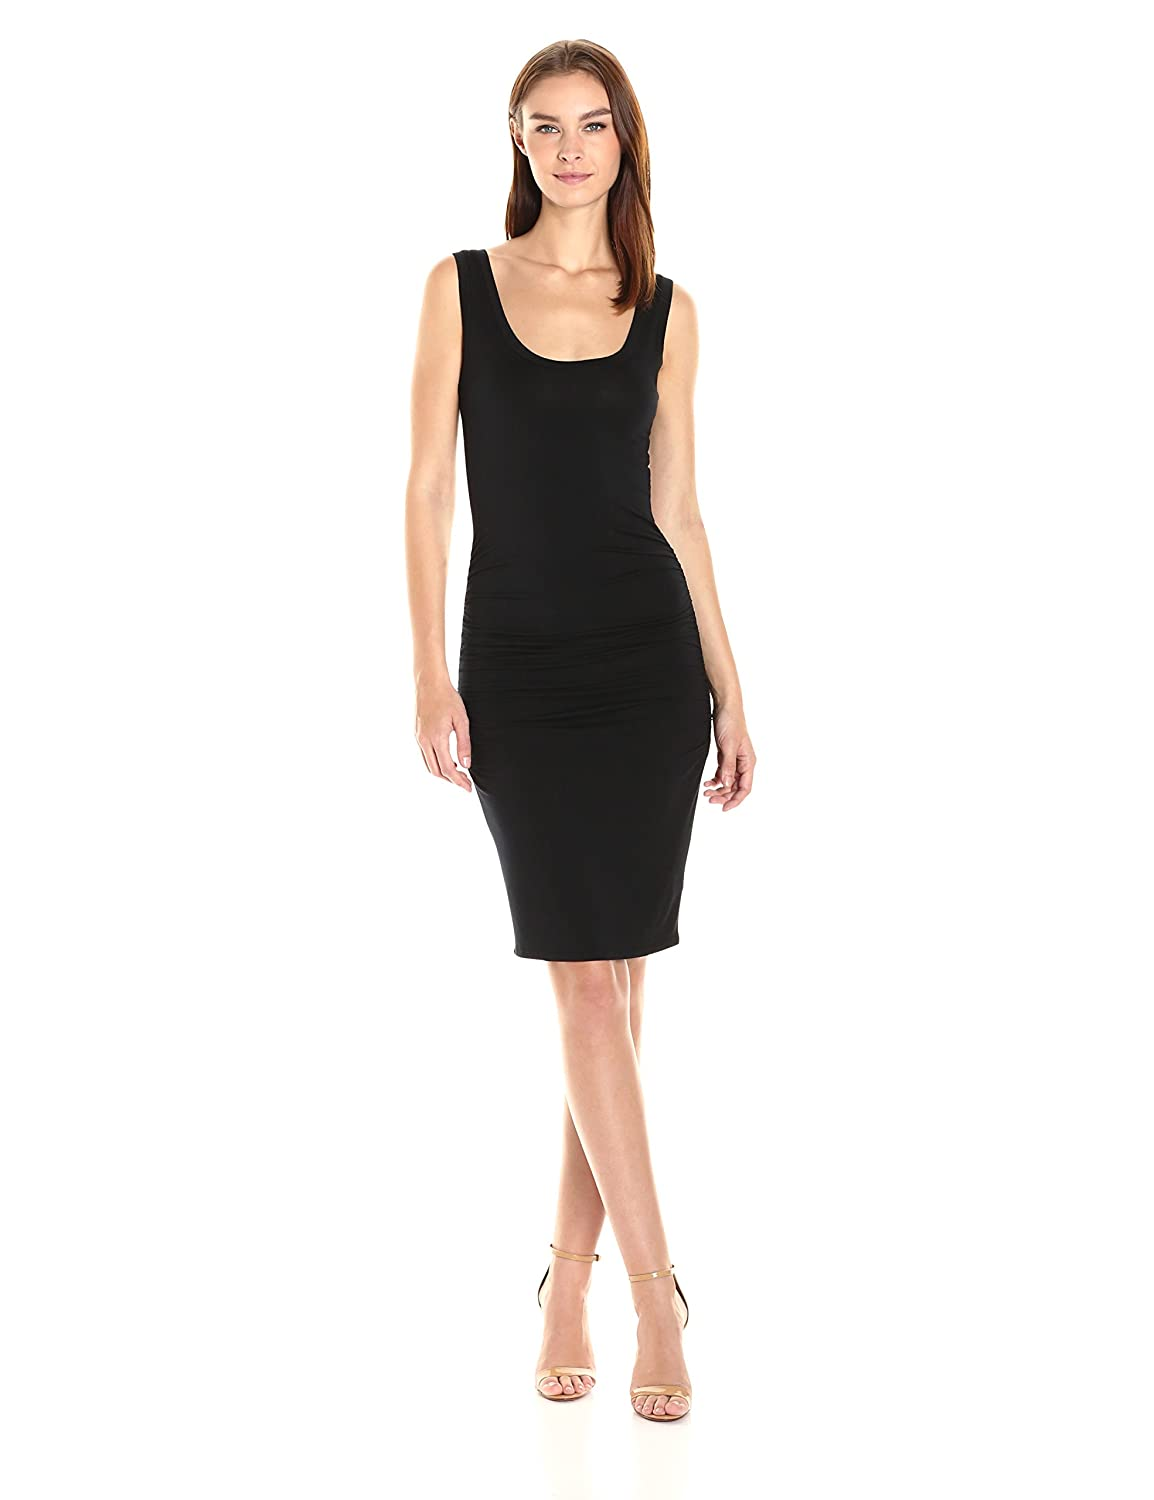 95a49df322 LAmade Women's Sleeveless Ruched Above The Knee Dress at Amazon Women's  Clothing store: